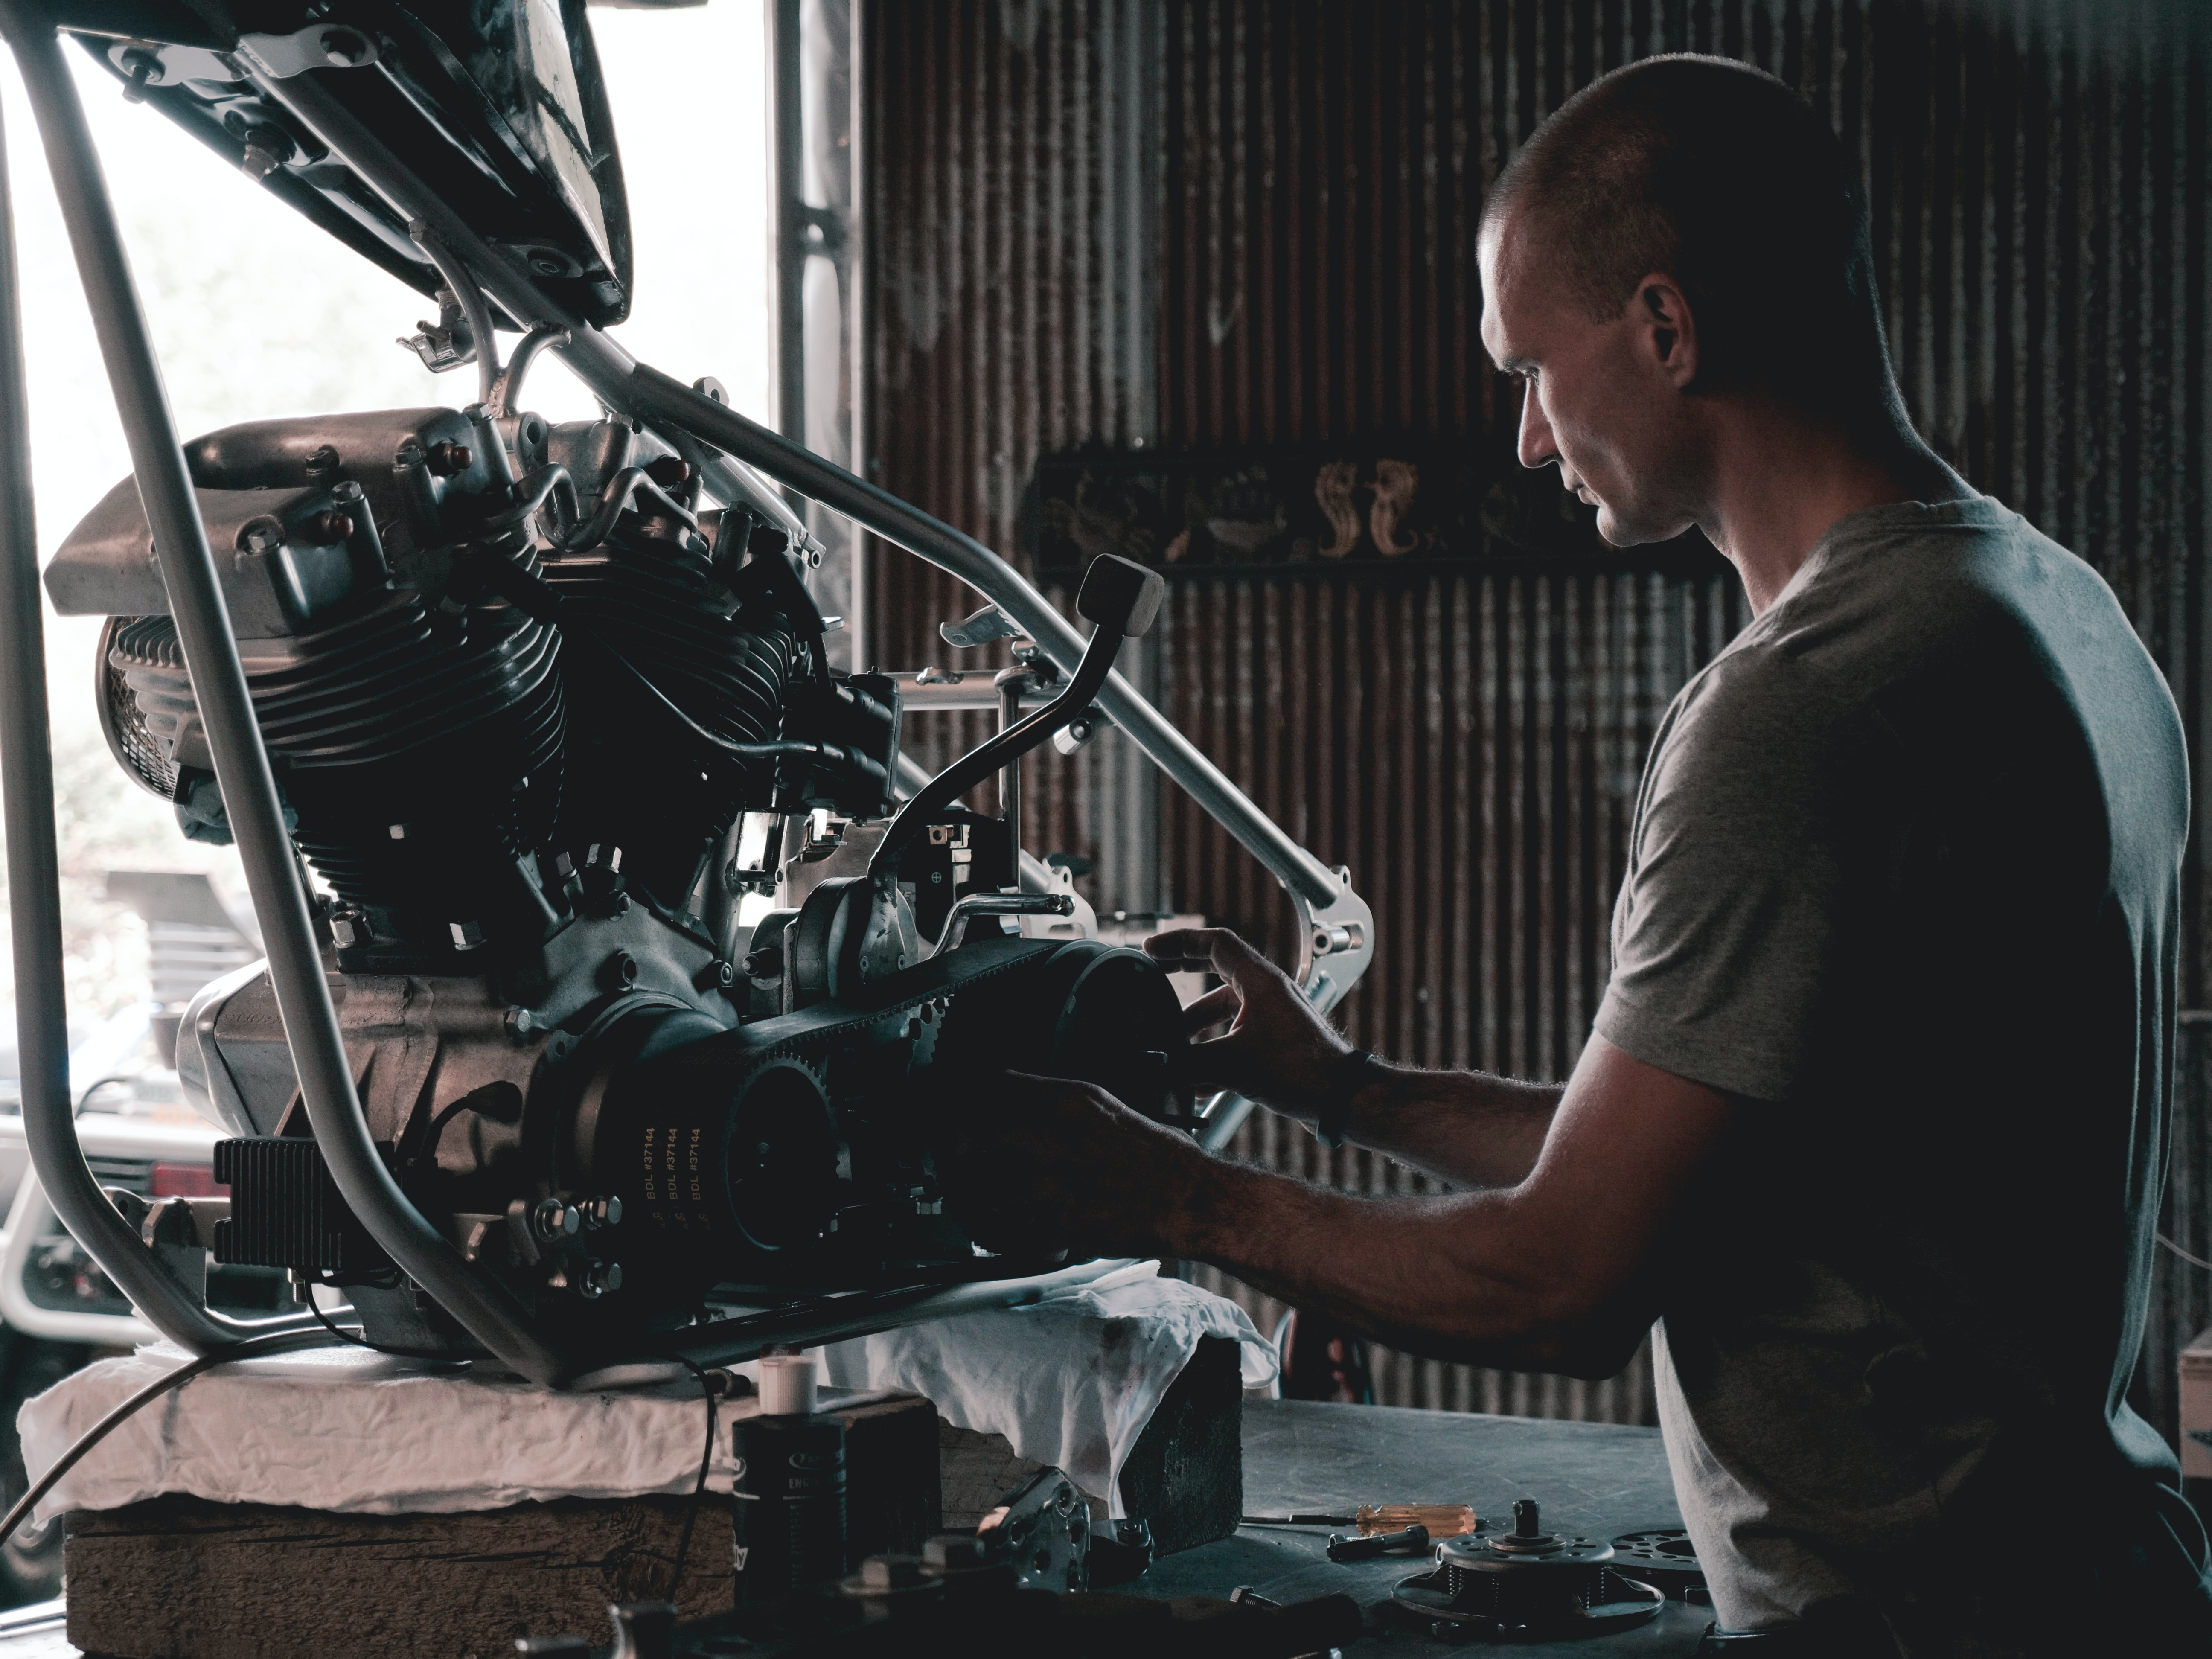 An Interview with a Heavy Vehicle Mechanic Recruiter